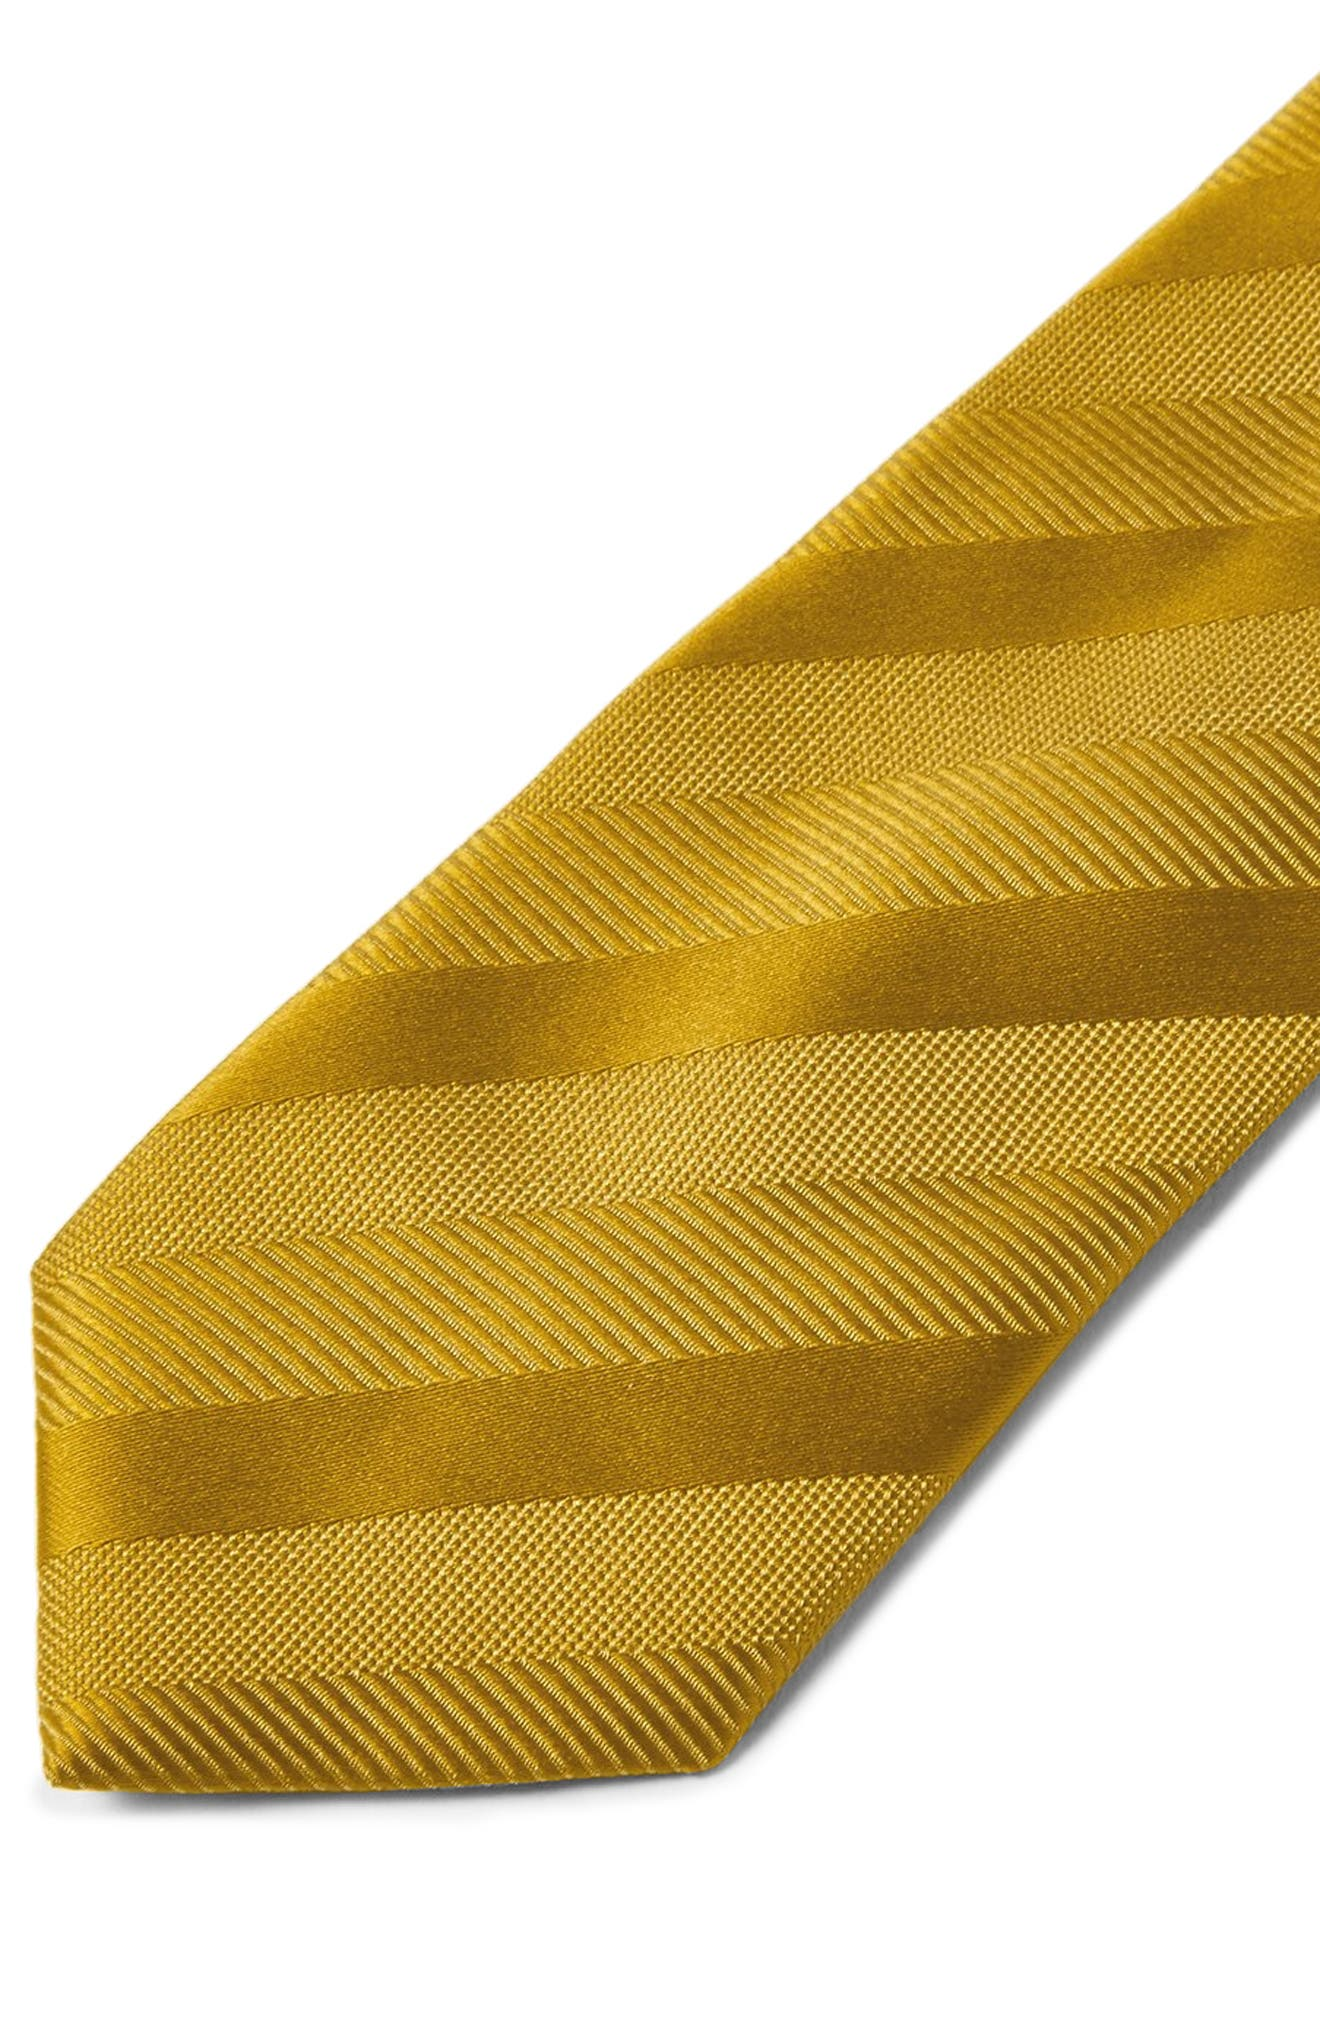 Stripe Jacquard Tie,                             Alternate thumbnail 2, color,                             710